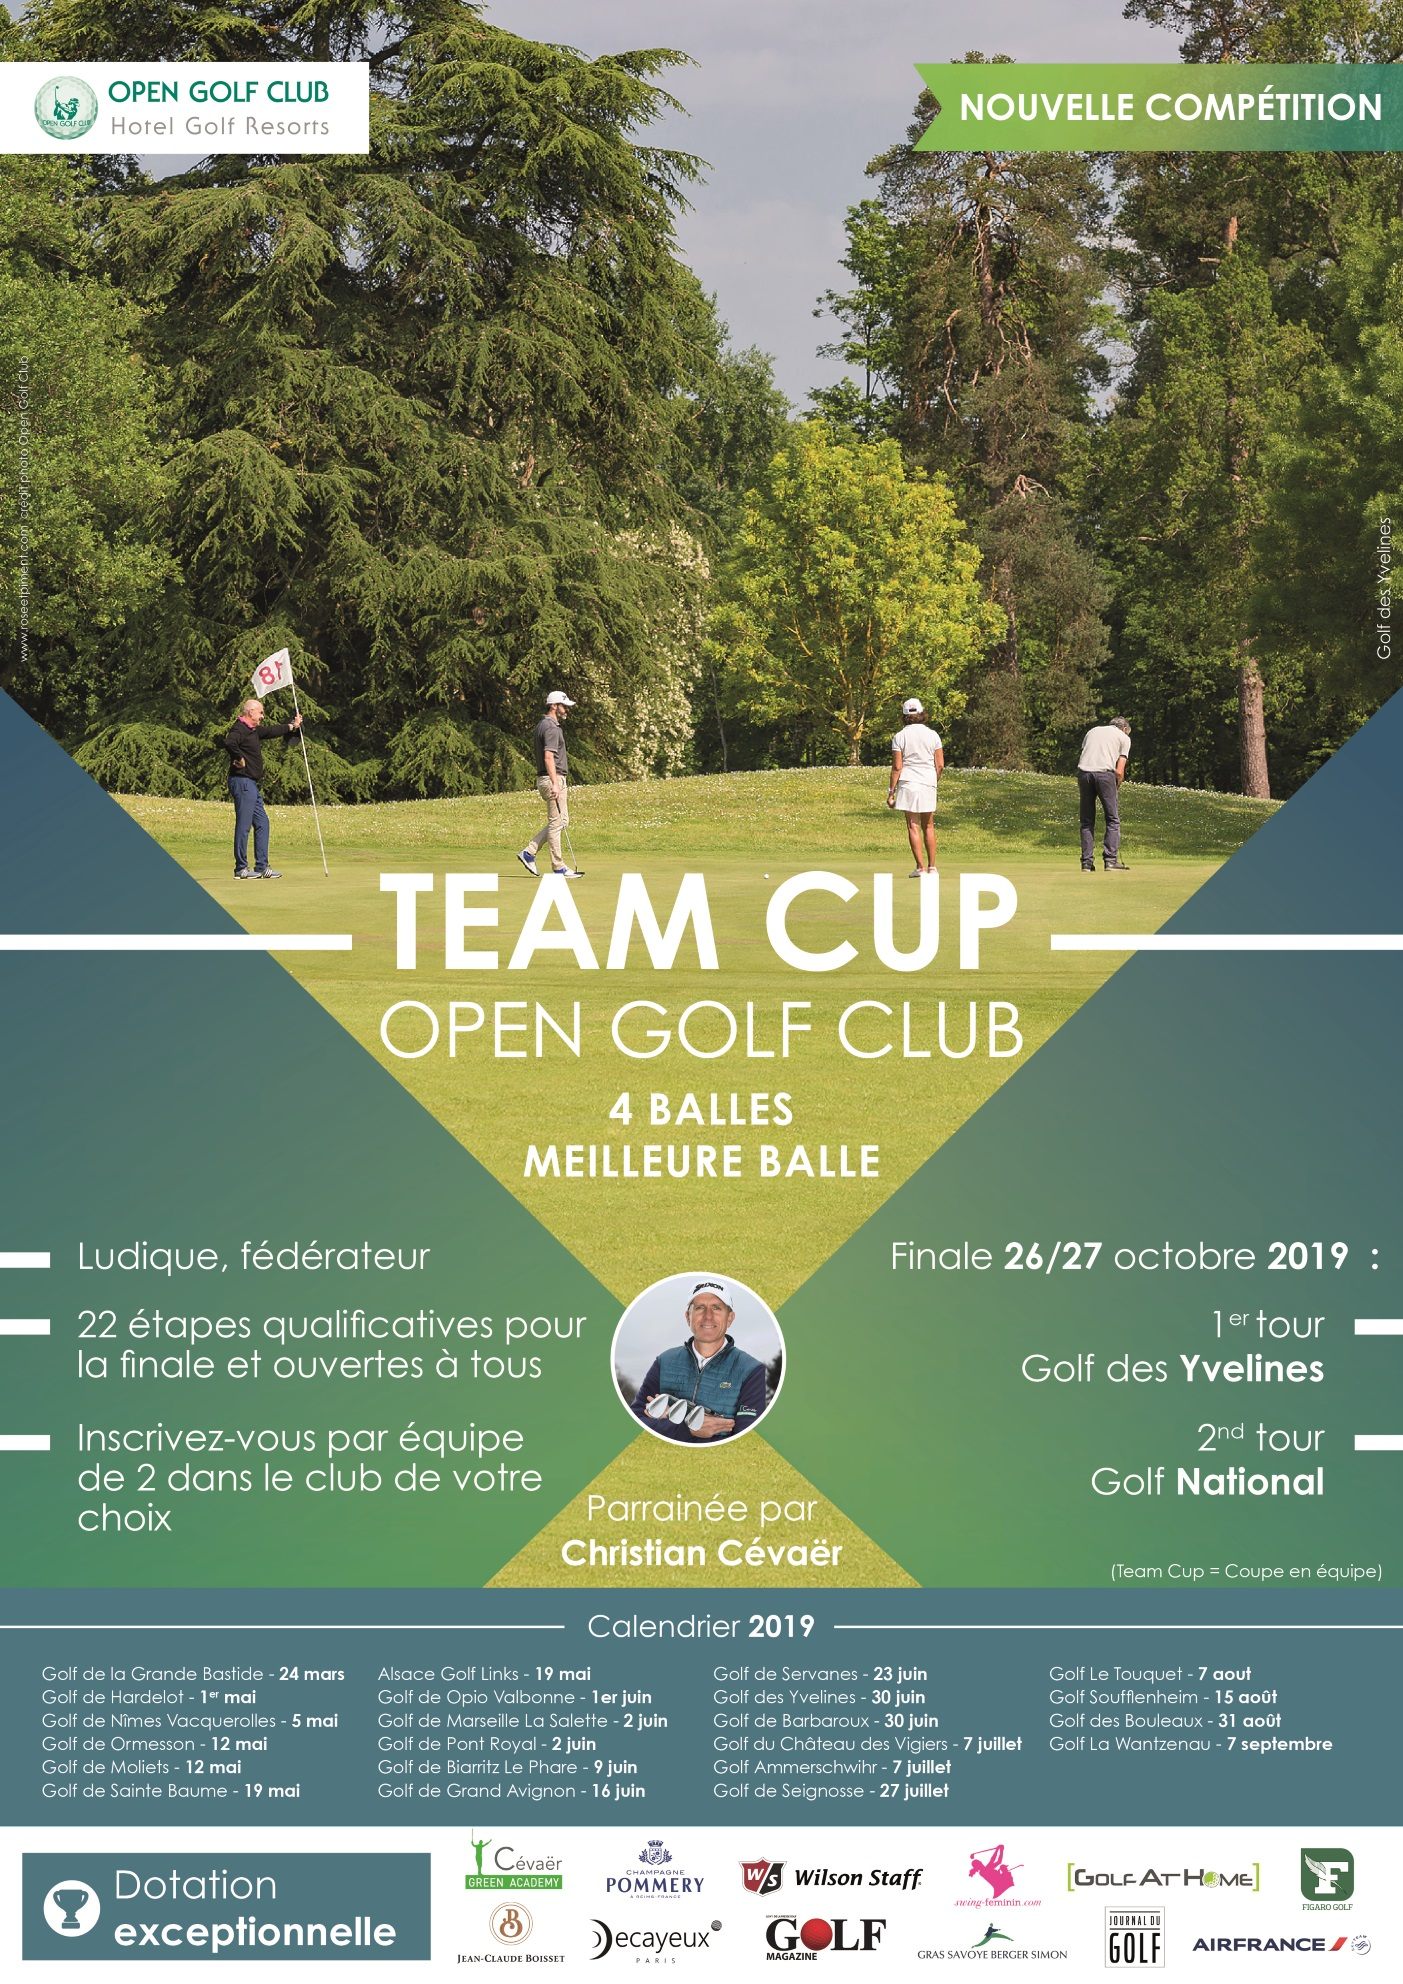 TEAM CUP BY OPEN GOLF CLUB